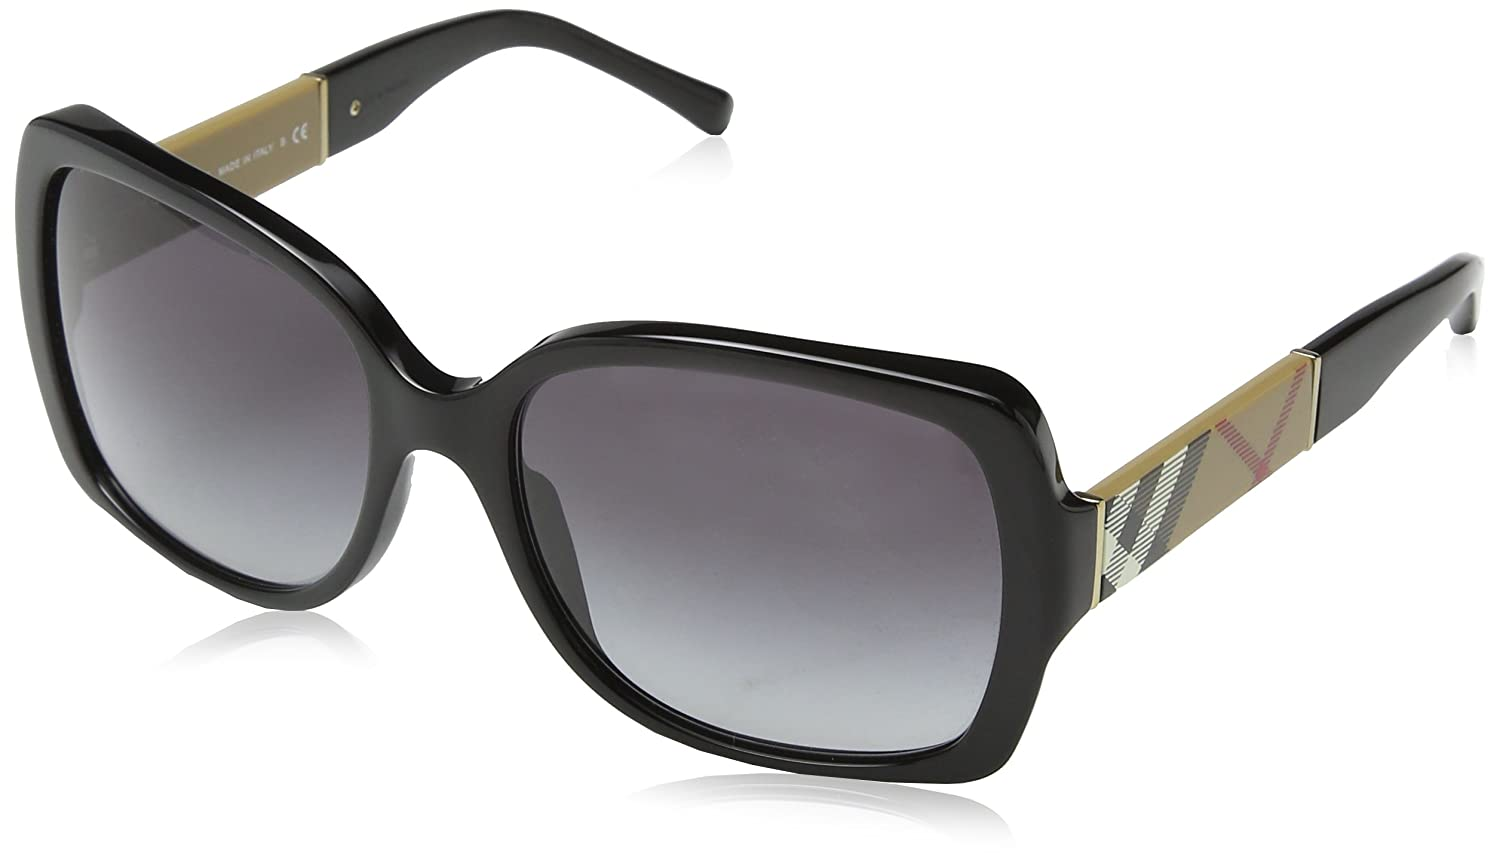 Black Burberry Oversize Square Sunglasses in Black BE4160 343 38G 58